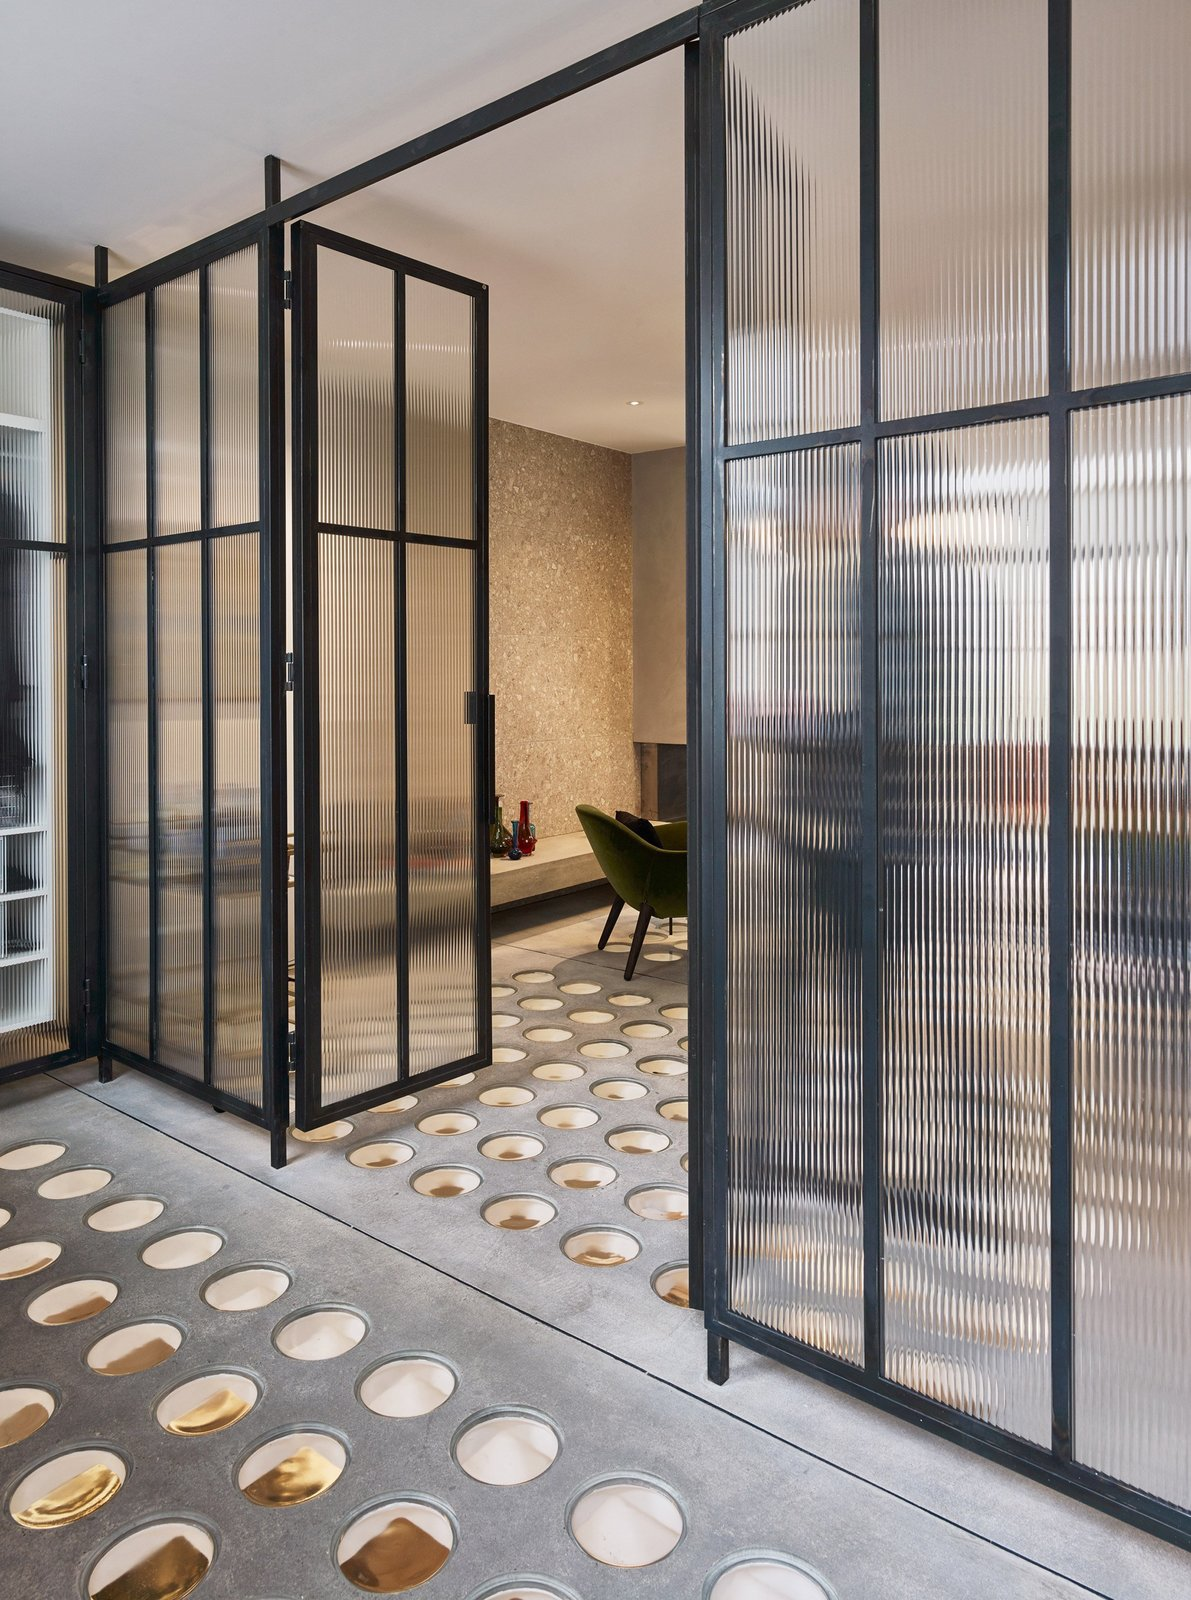 Doors  Photo 9 of 12 in Transparent Perforated Circles Bring Light and Movement to This London Terrace House